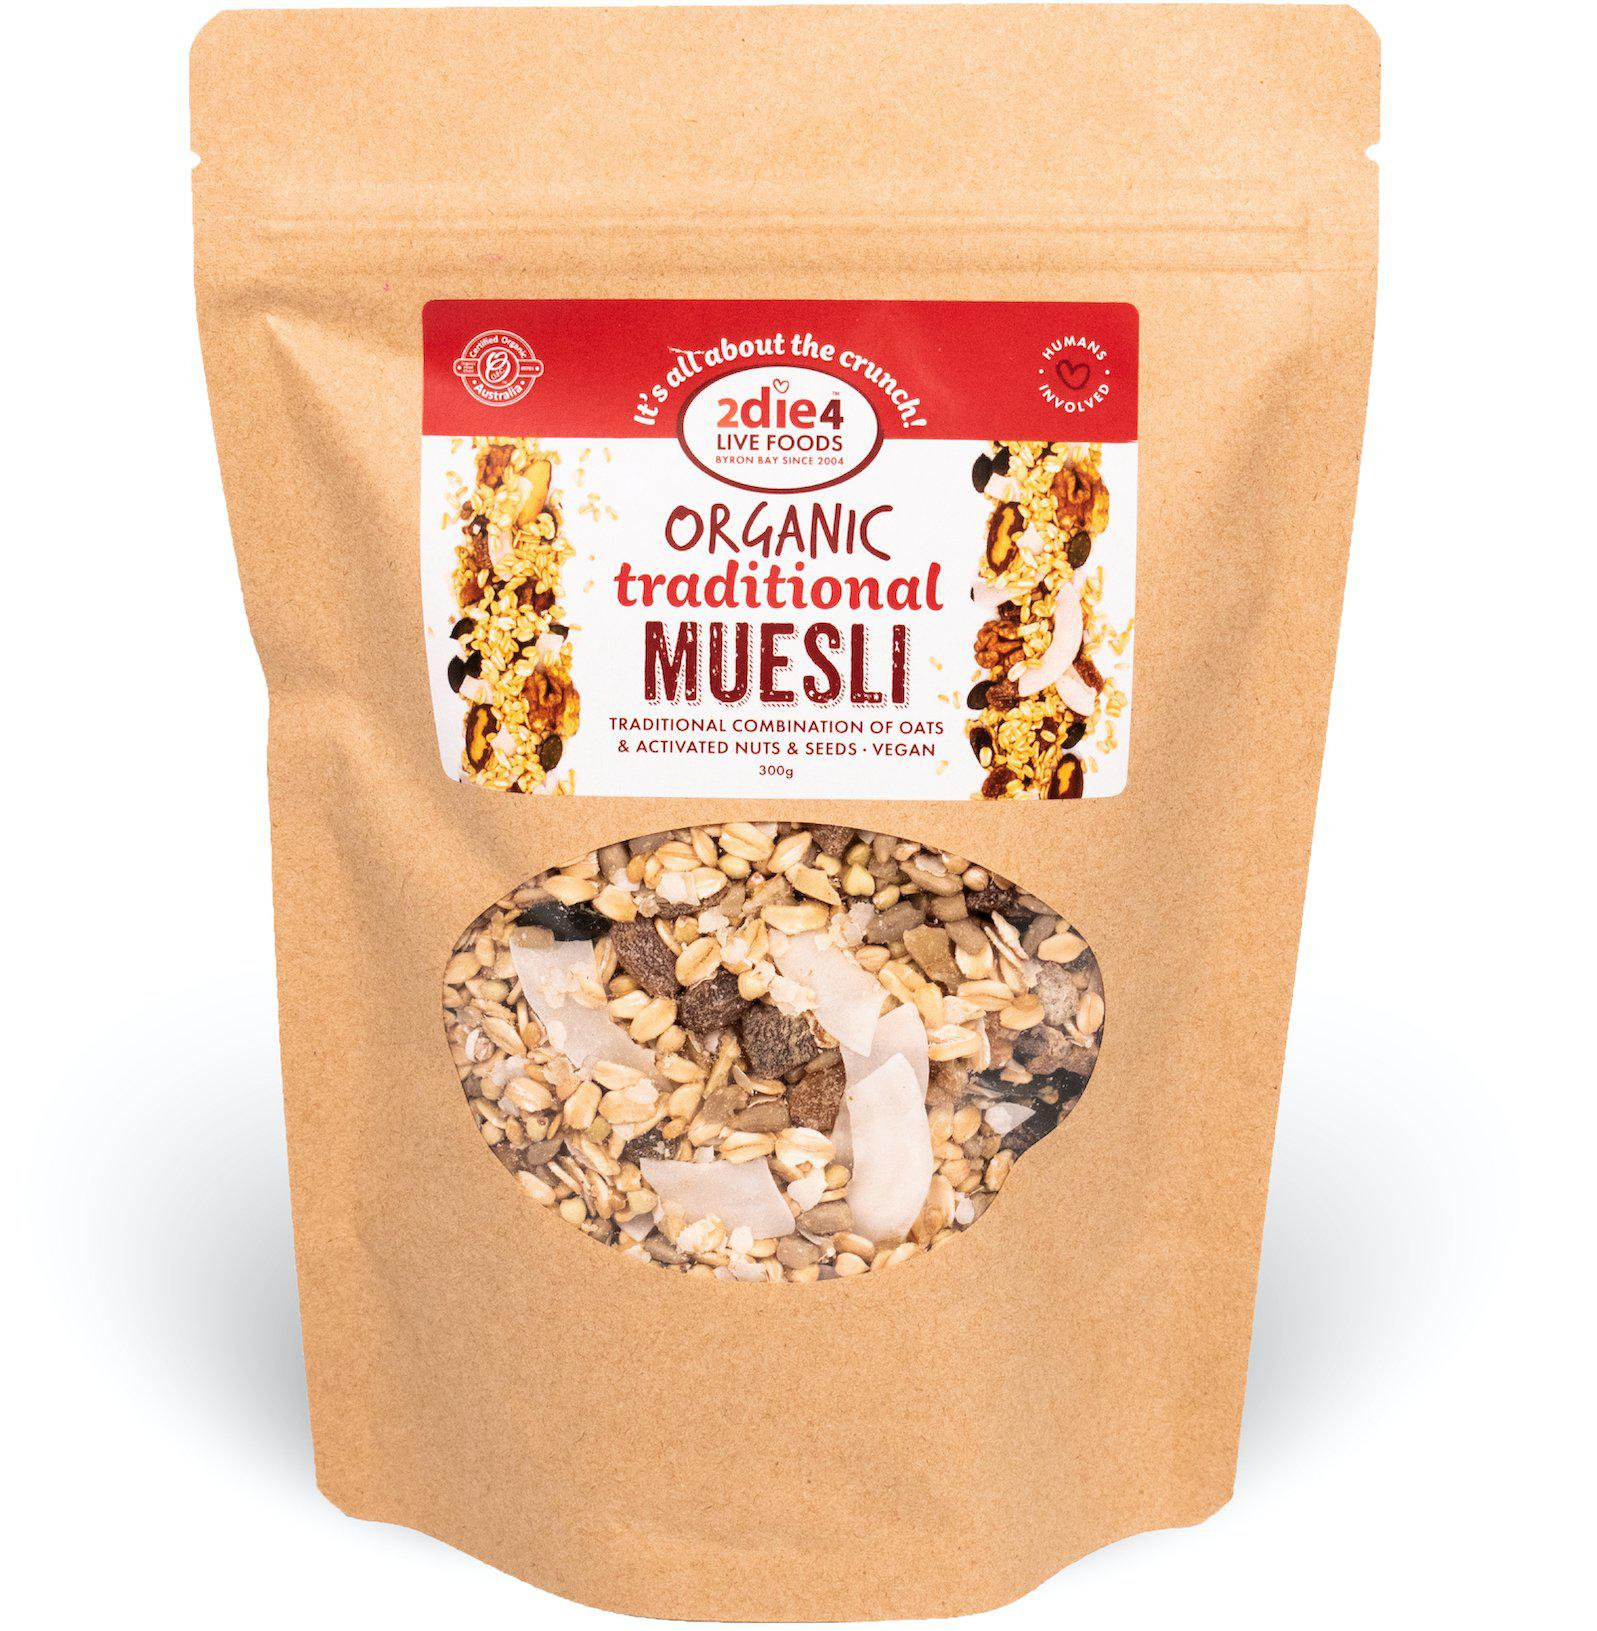 Organic Traditional Muesli - 2die4livefoods